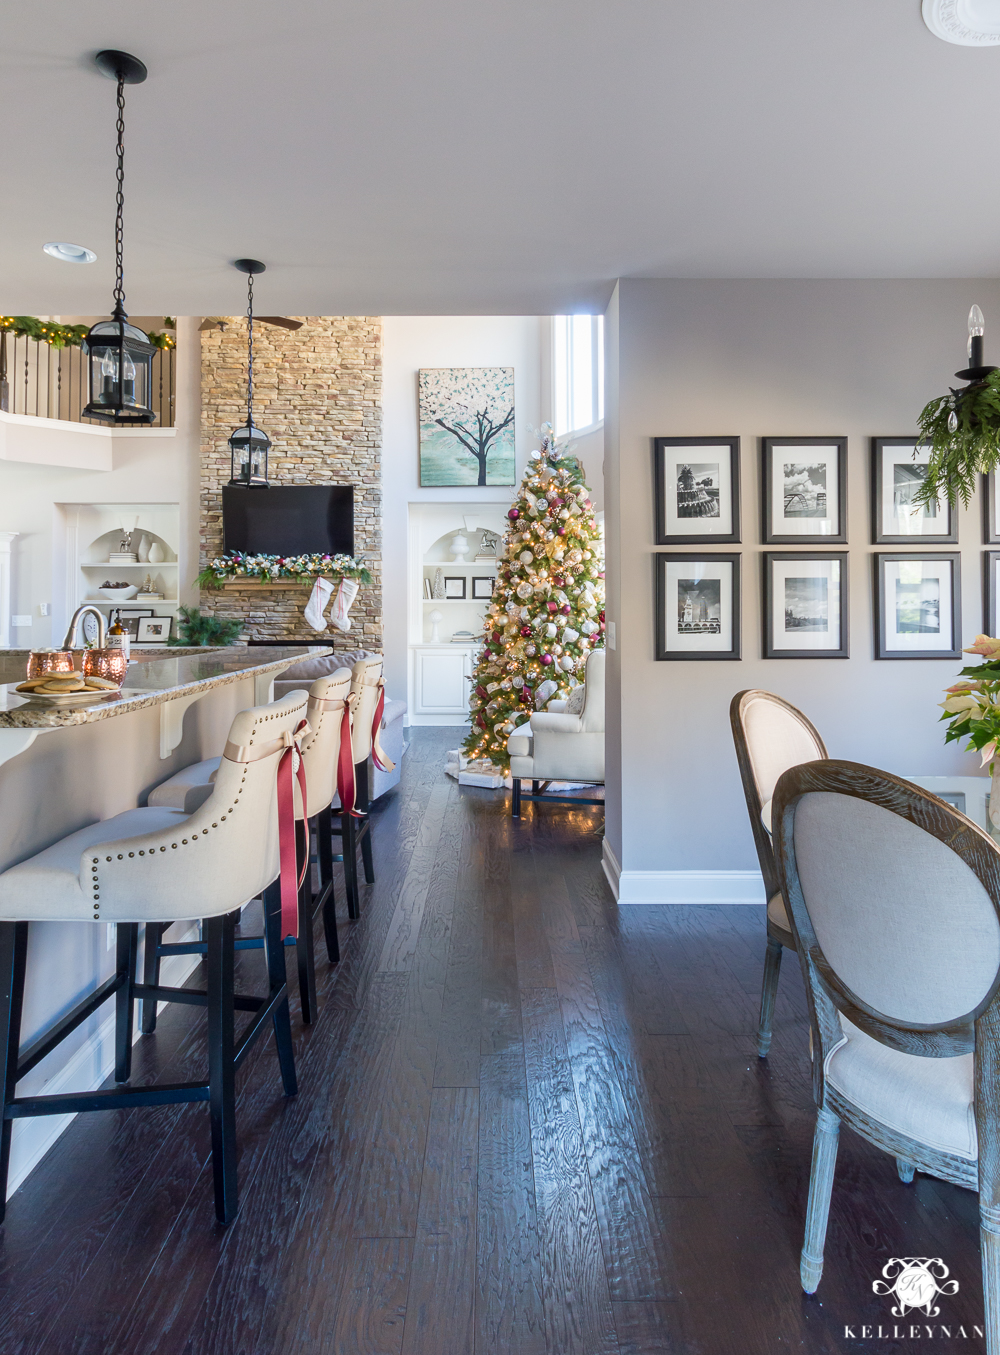 Sherwin williams perfect greige paint in a classic christmas home